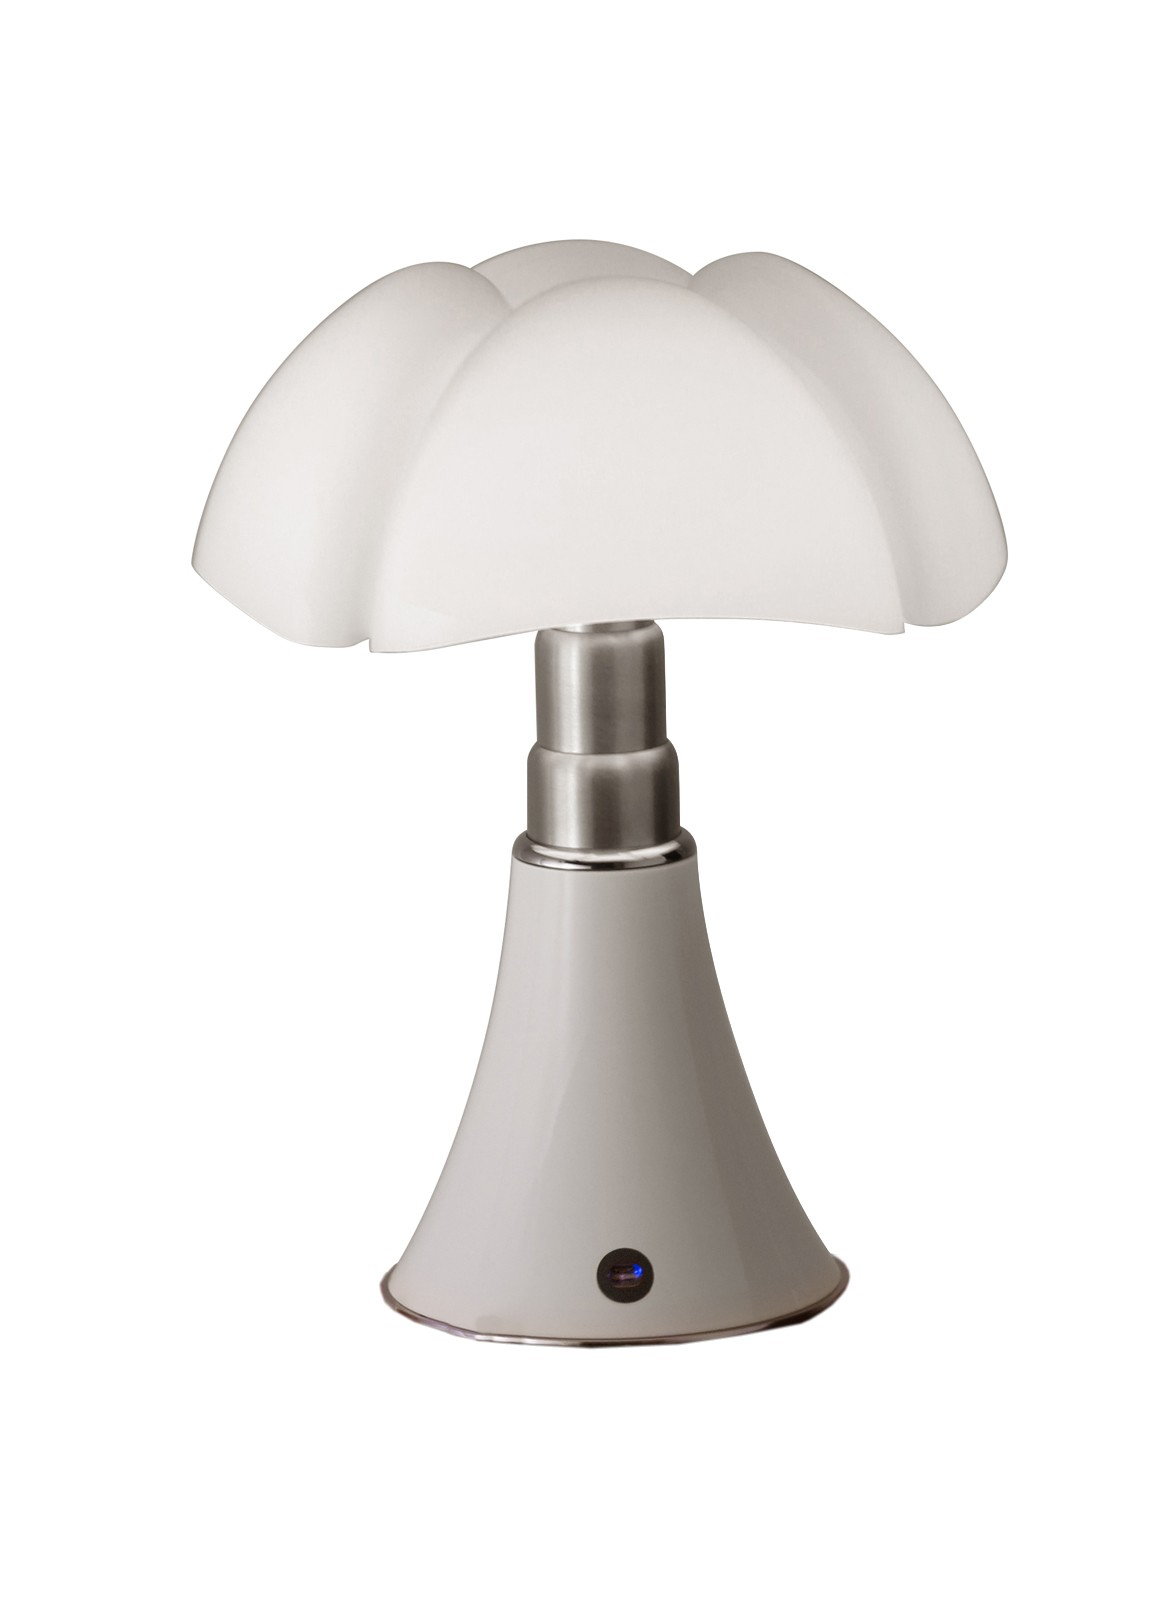 Lampe Suspension Sans Fil Lampe à Poser Mini Pipistrello Sans Fil De Martinelli Luce 2 Coloris